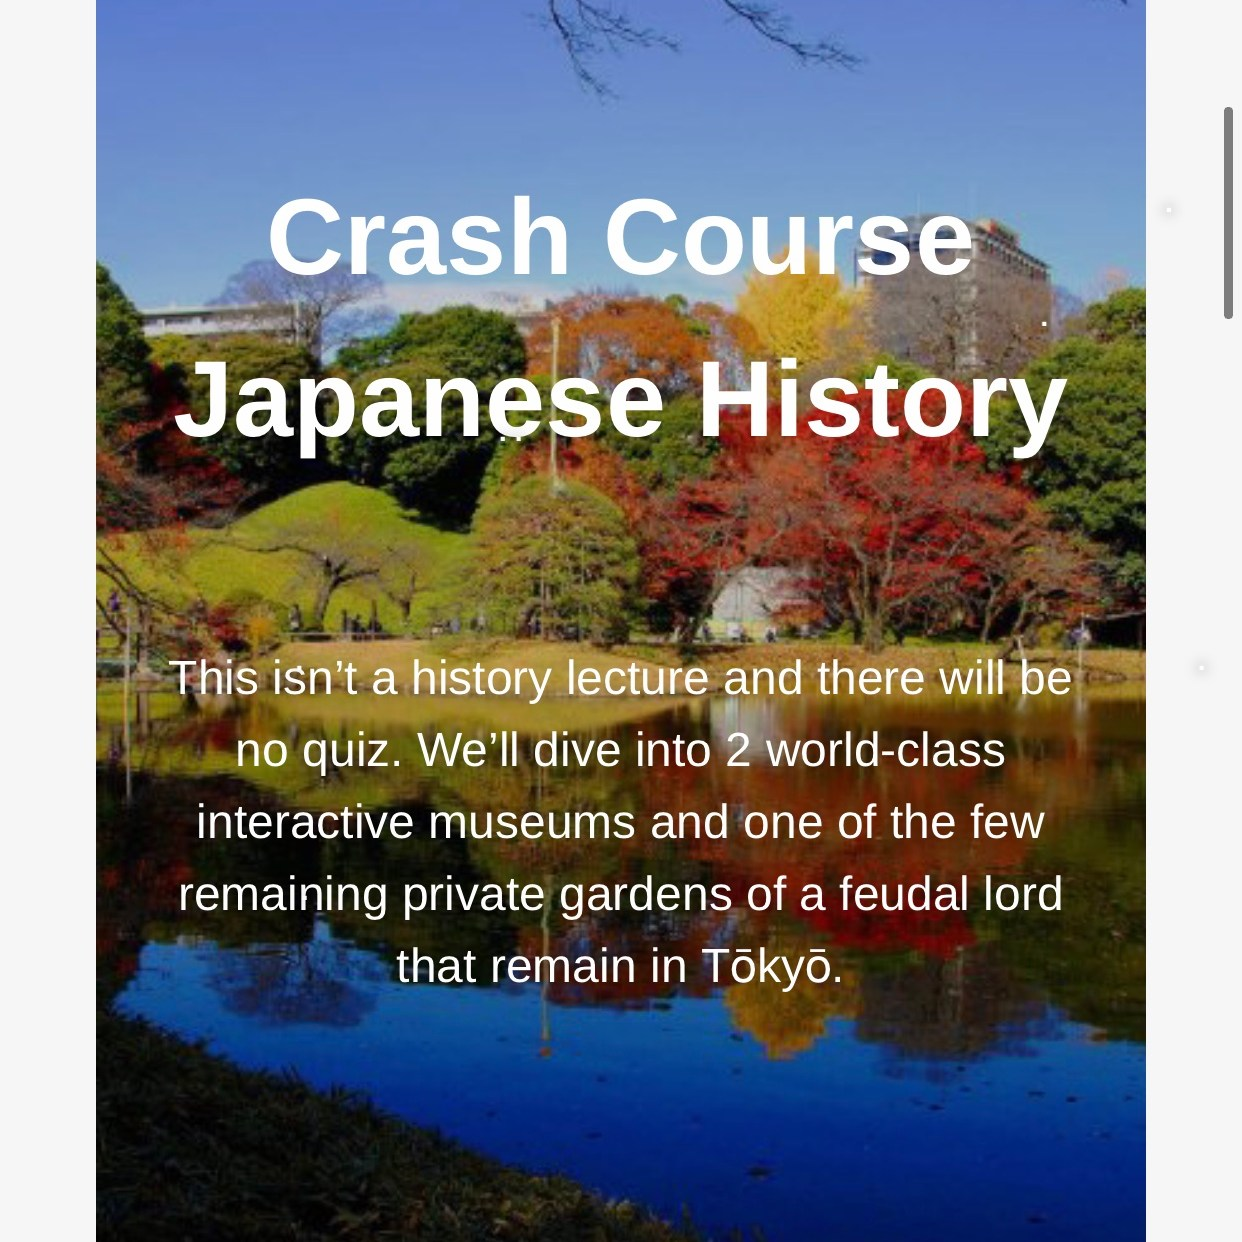 Japanese History Tour